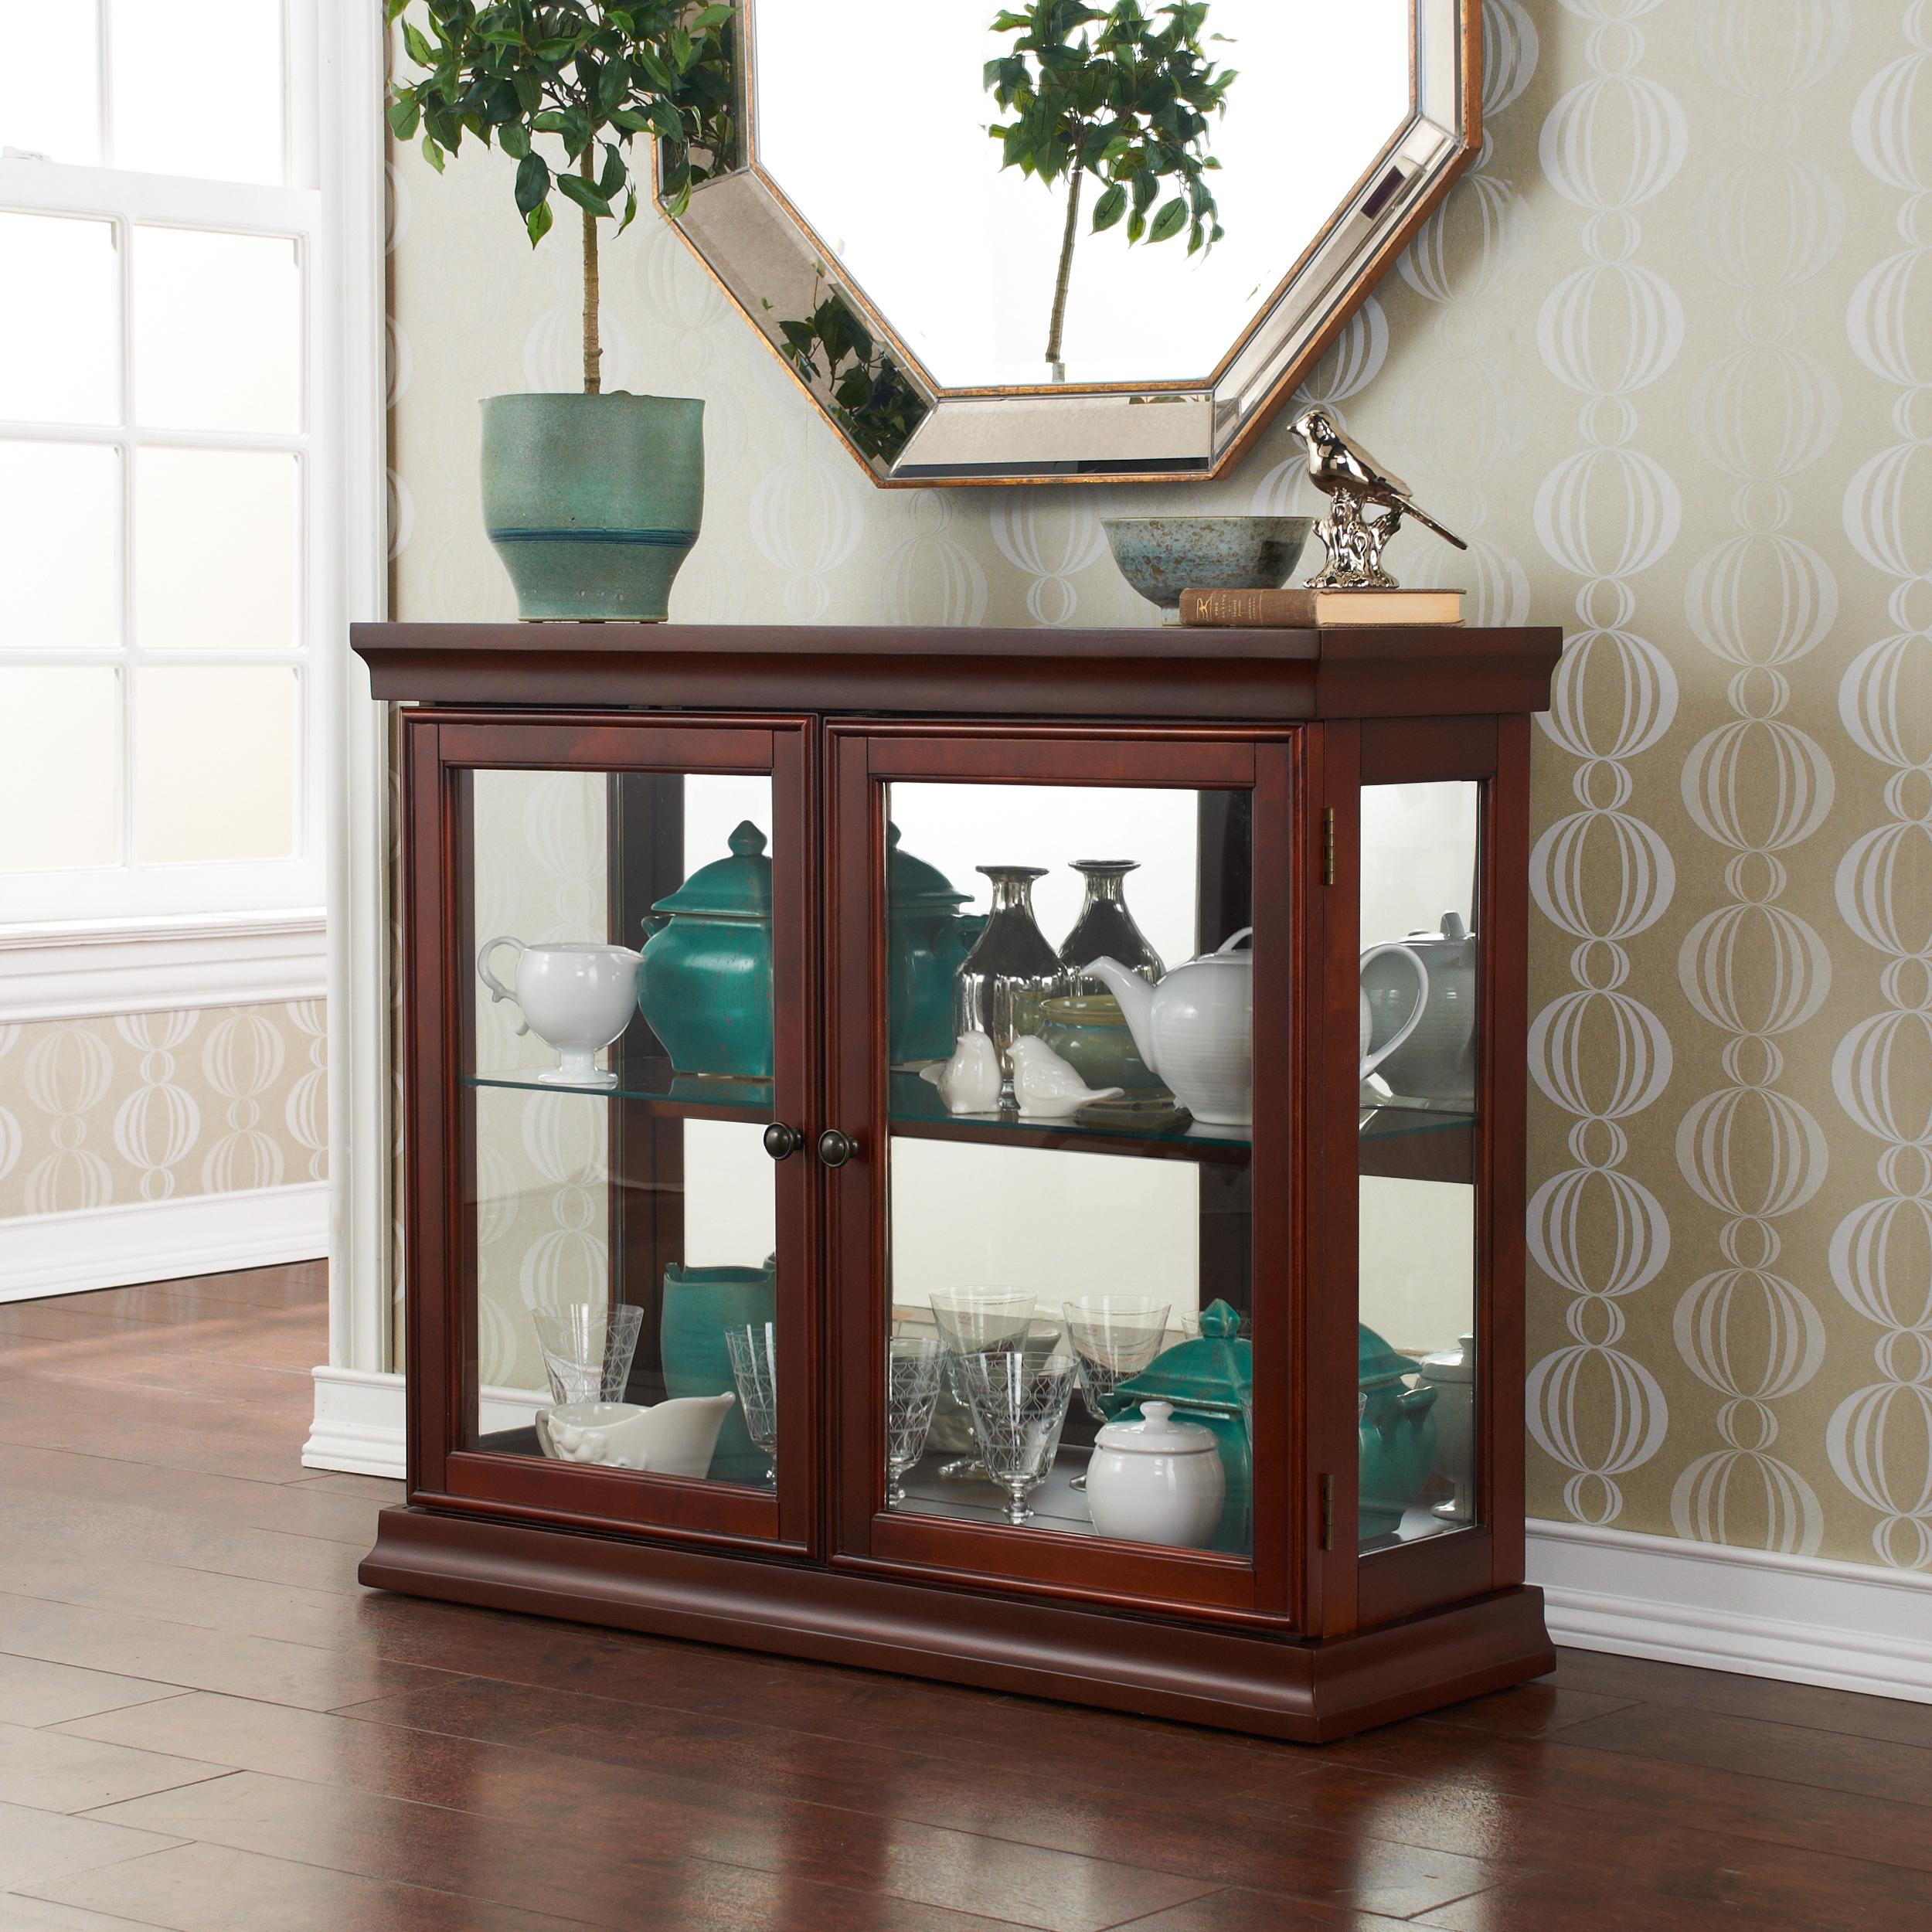 #376961 Amazon.com SEI Mahogany Curio Cabinet With Double  with 2500x2500 px of Highly Rated Glass Display Cabinets For Living Room In India 25002500 picture/photo @ avoidforclosure.info